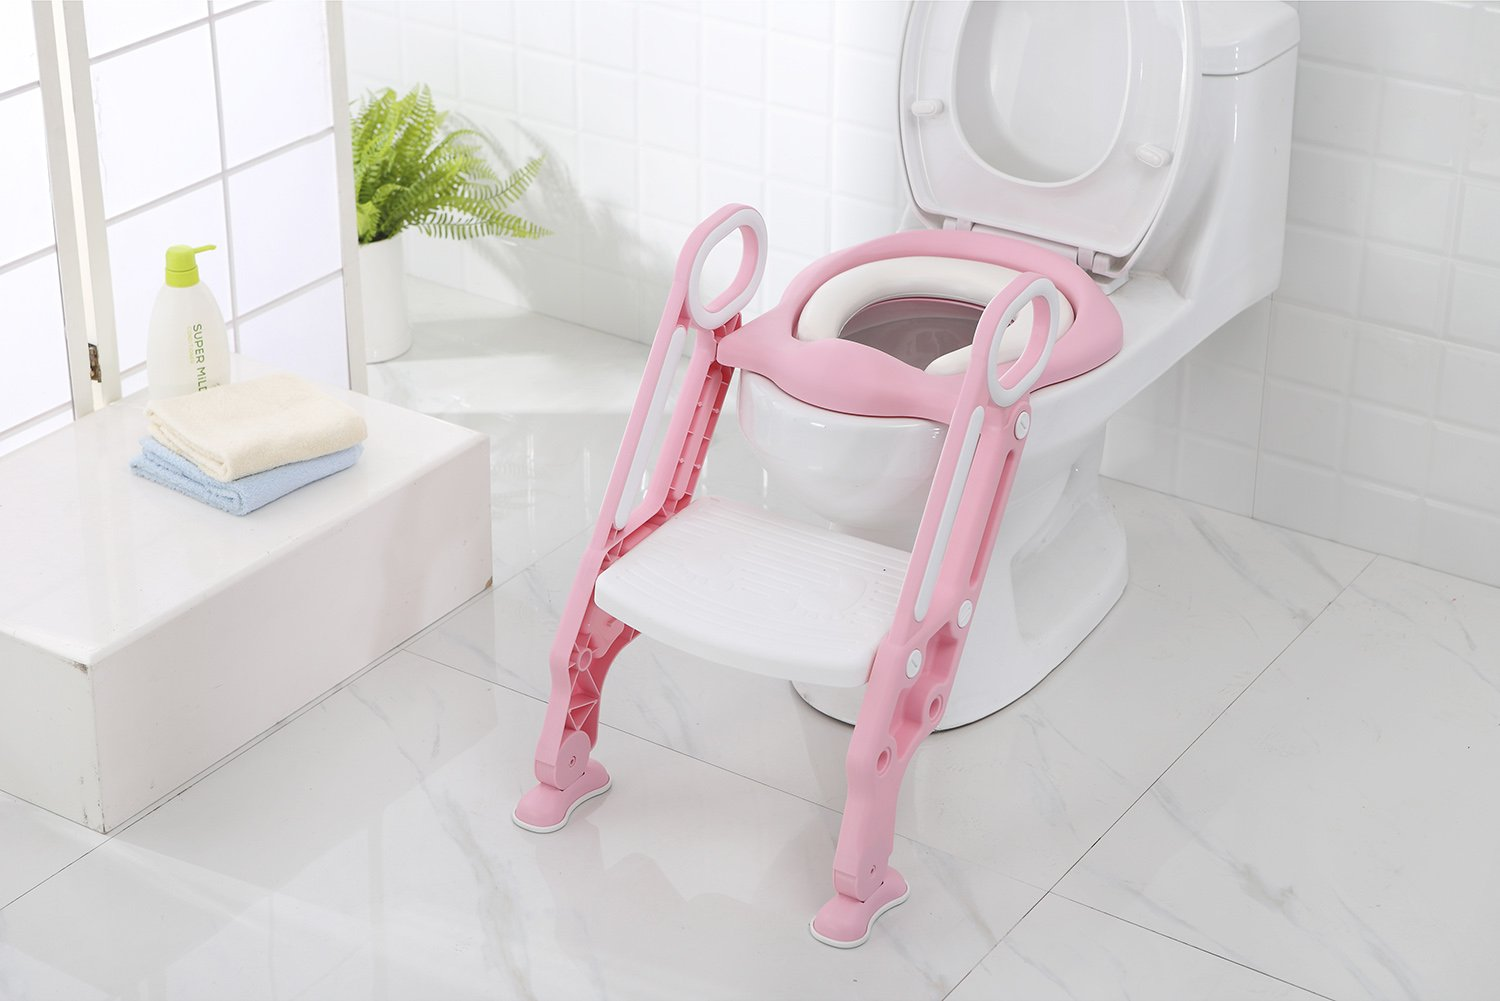 Iapetus Potty Toilet Training Seat with Step Stool Ladder for Kids and Babes, Portable Children' s Toilet Seat Chair, Comfortable, Safe, Sturdy, Excellent Potty Seat Trainer for Boys and Girls Zhejiang China Ningbo Yinzhou District